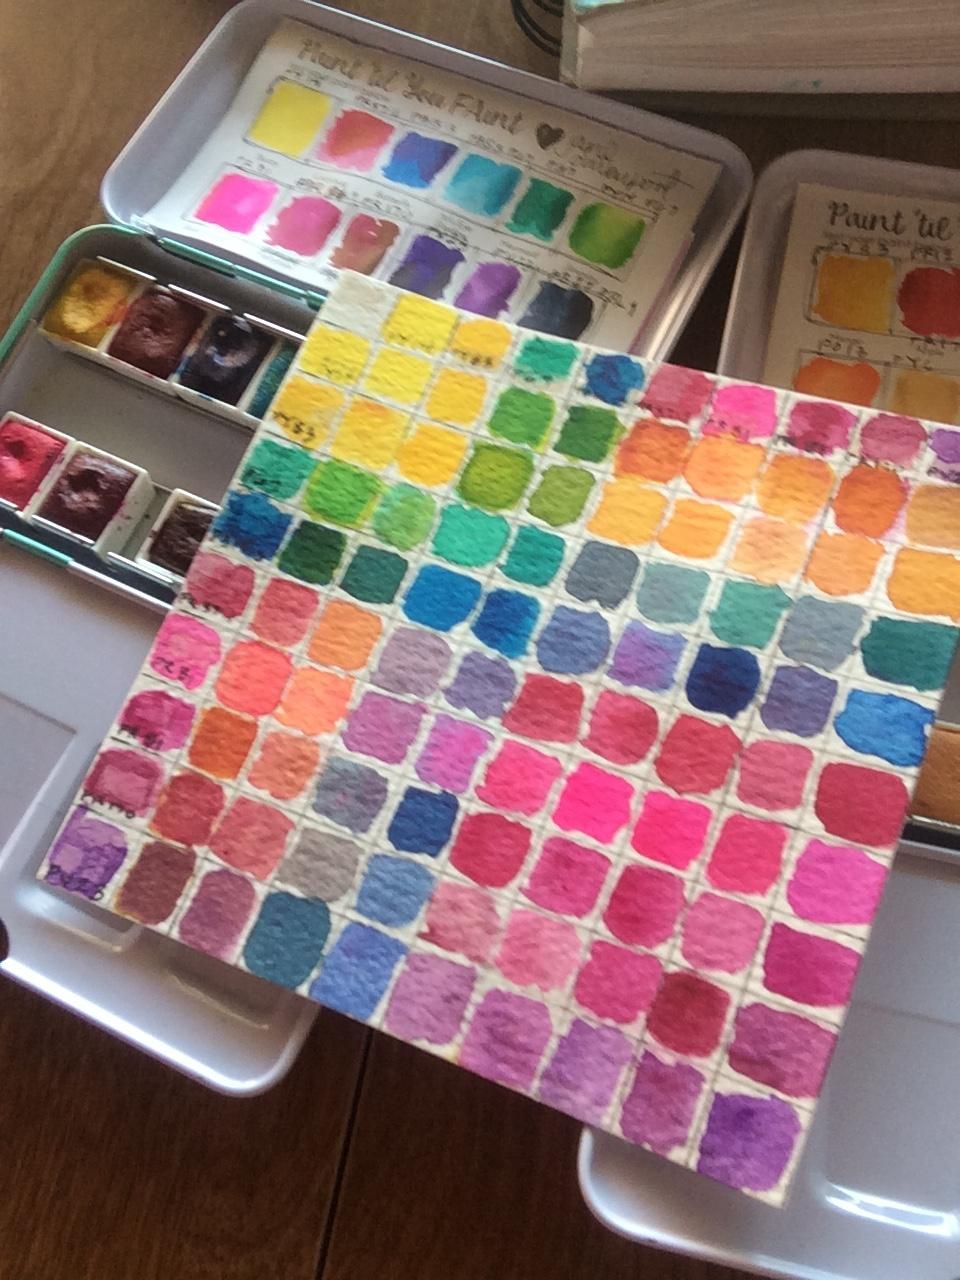 Basic Chart Jane Davenport Brights and Neutral Palettes - image 3 - student project